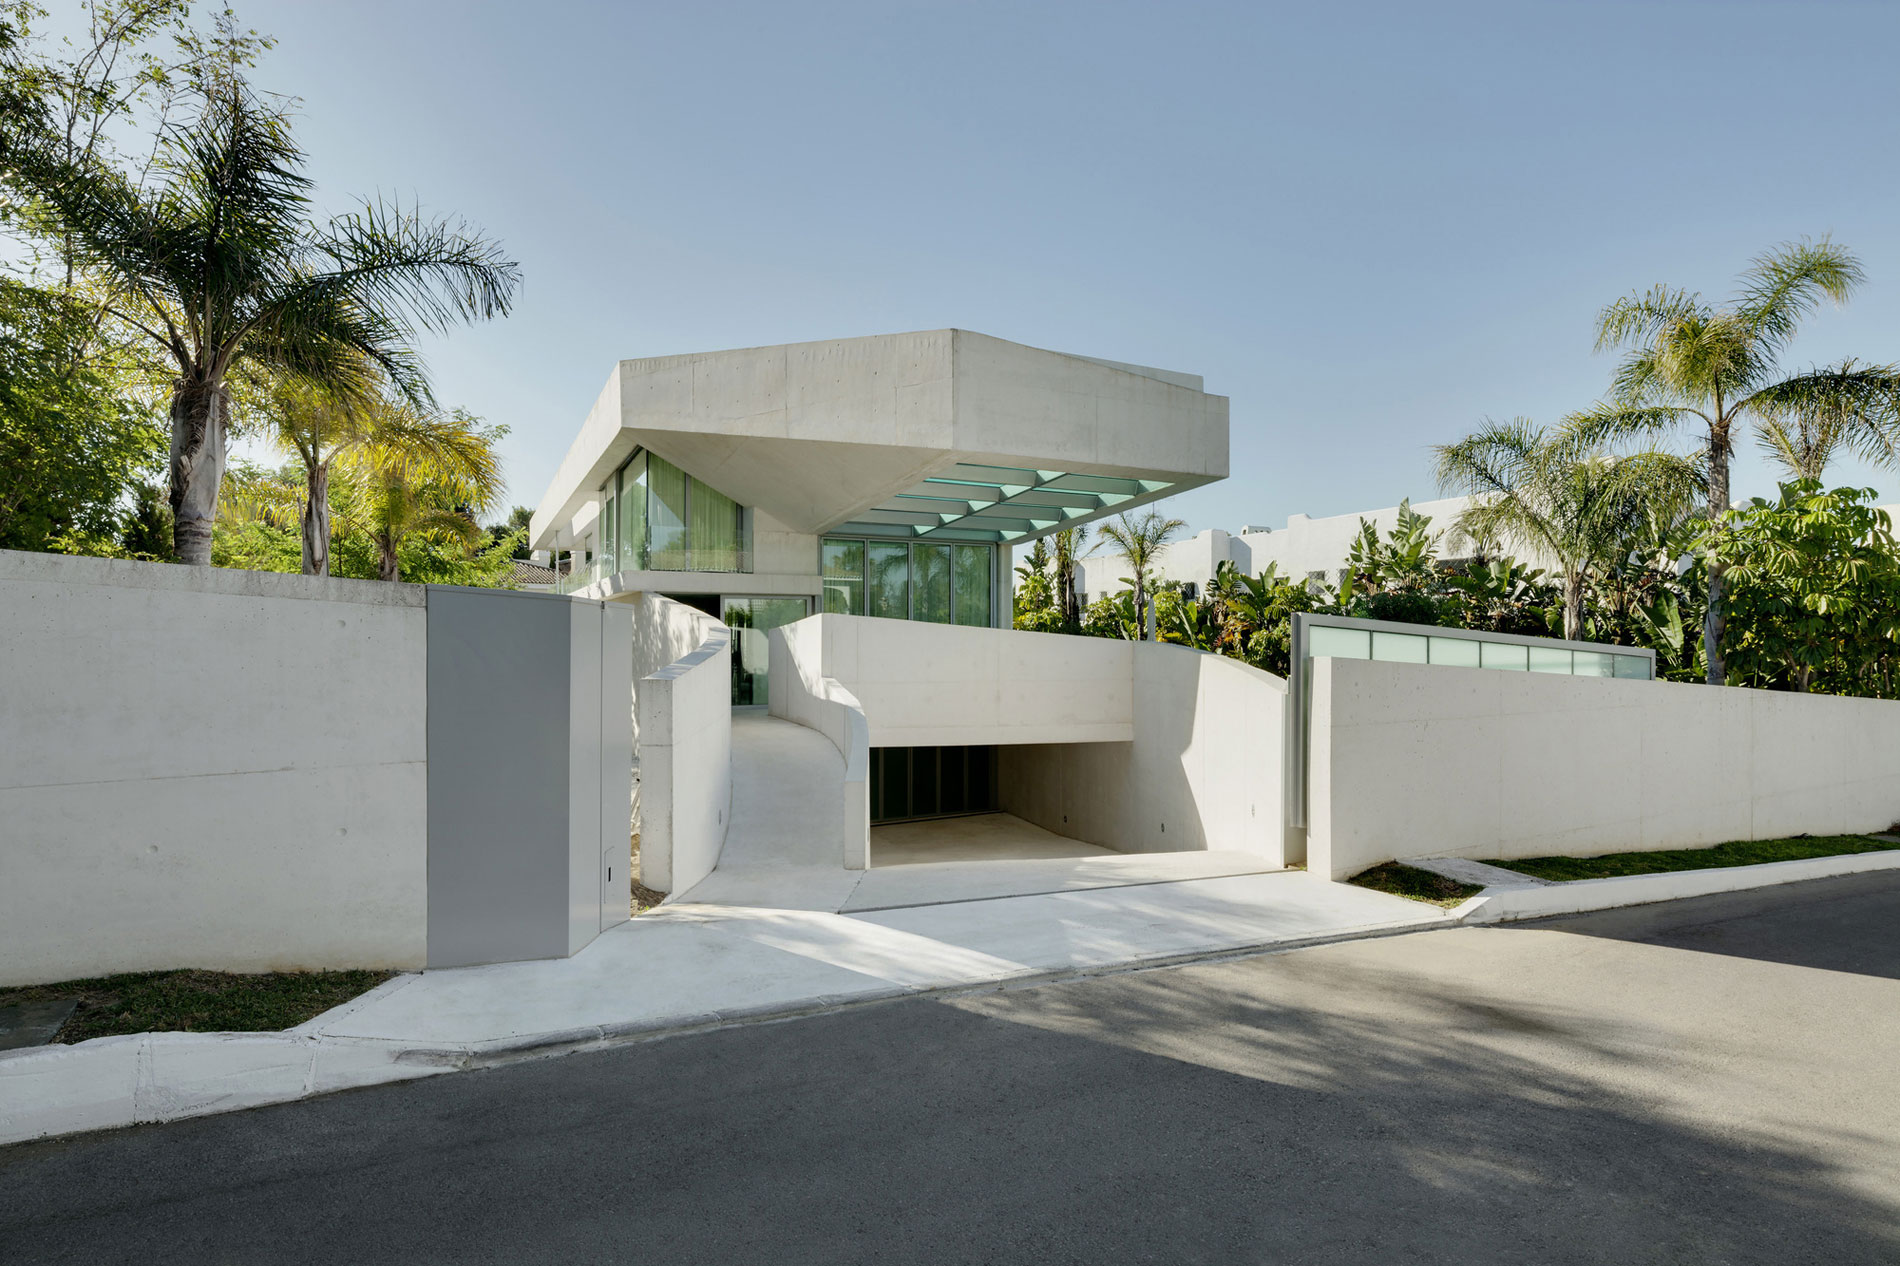 Jellyfish House by Wiel Arets Architects (1)